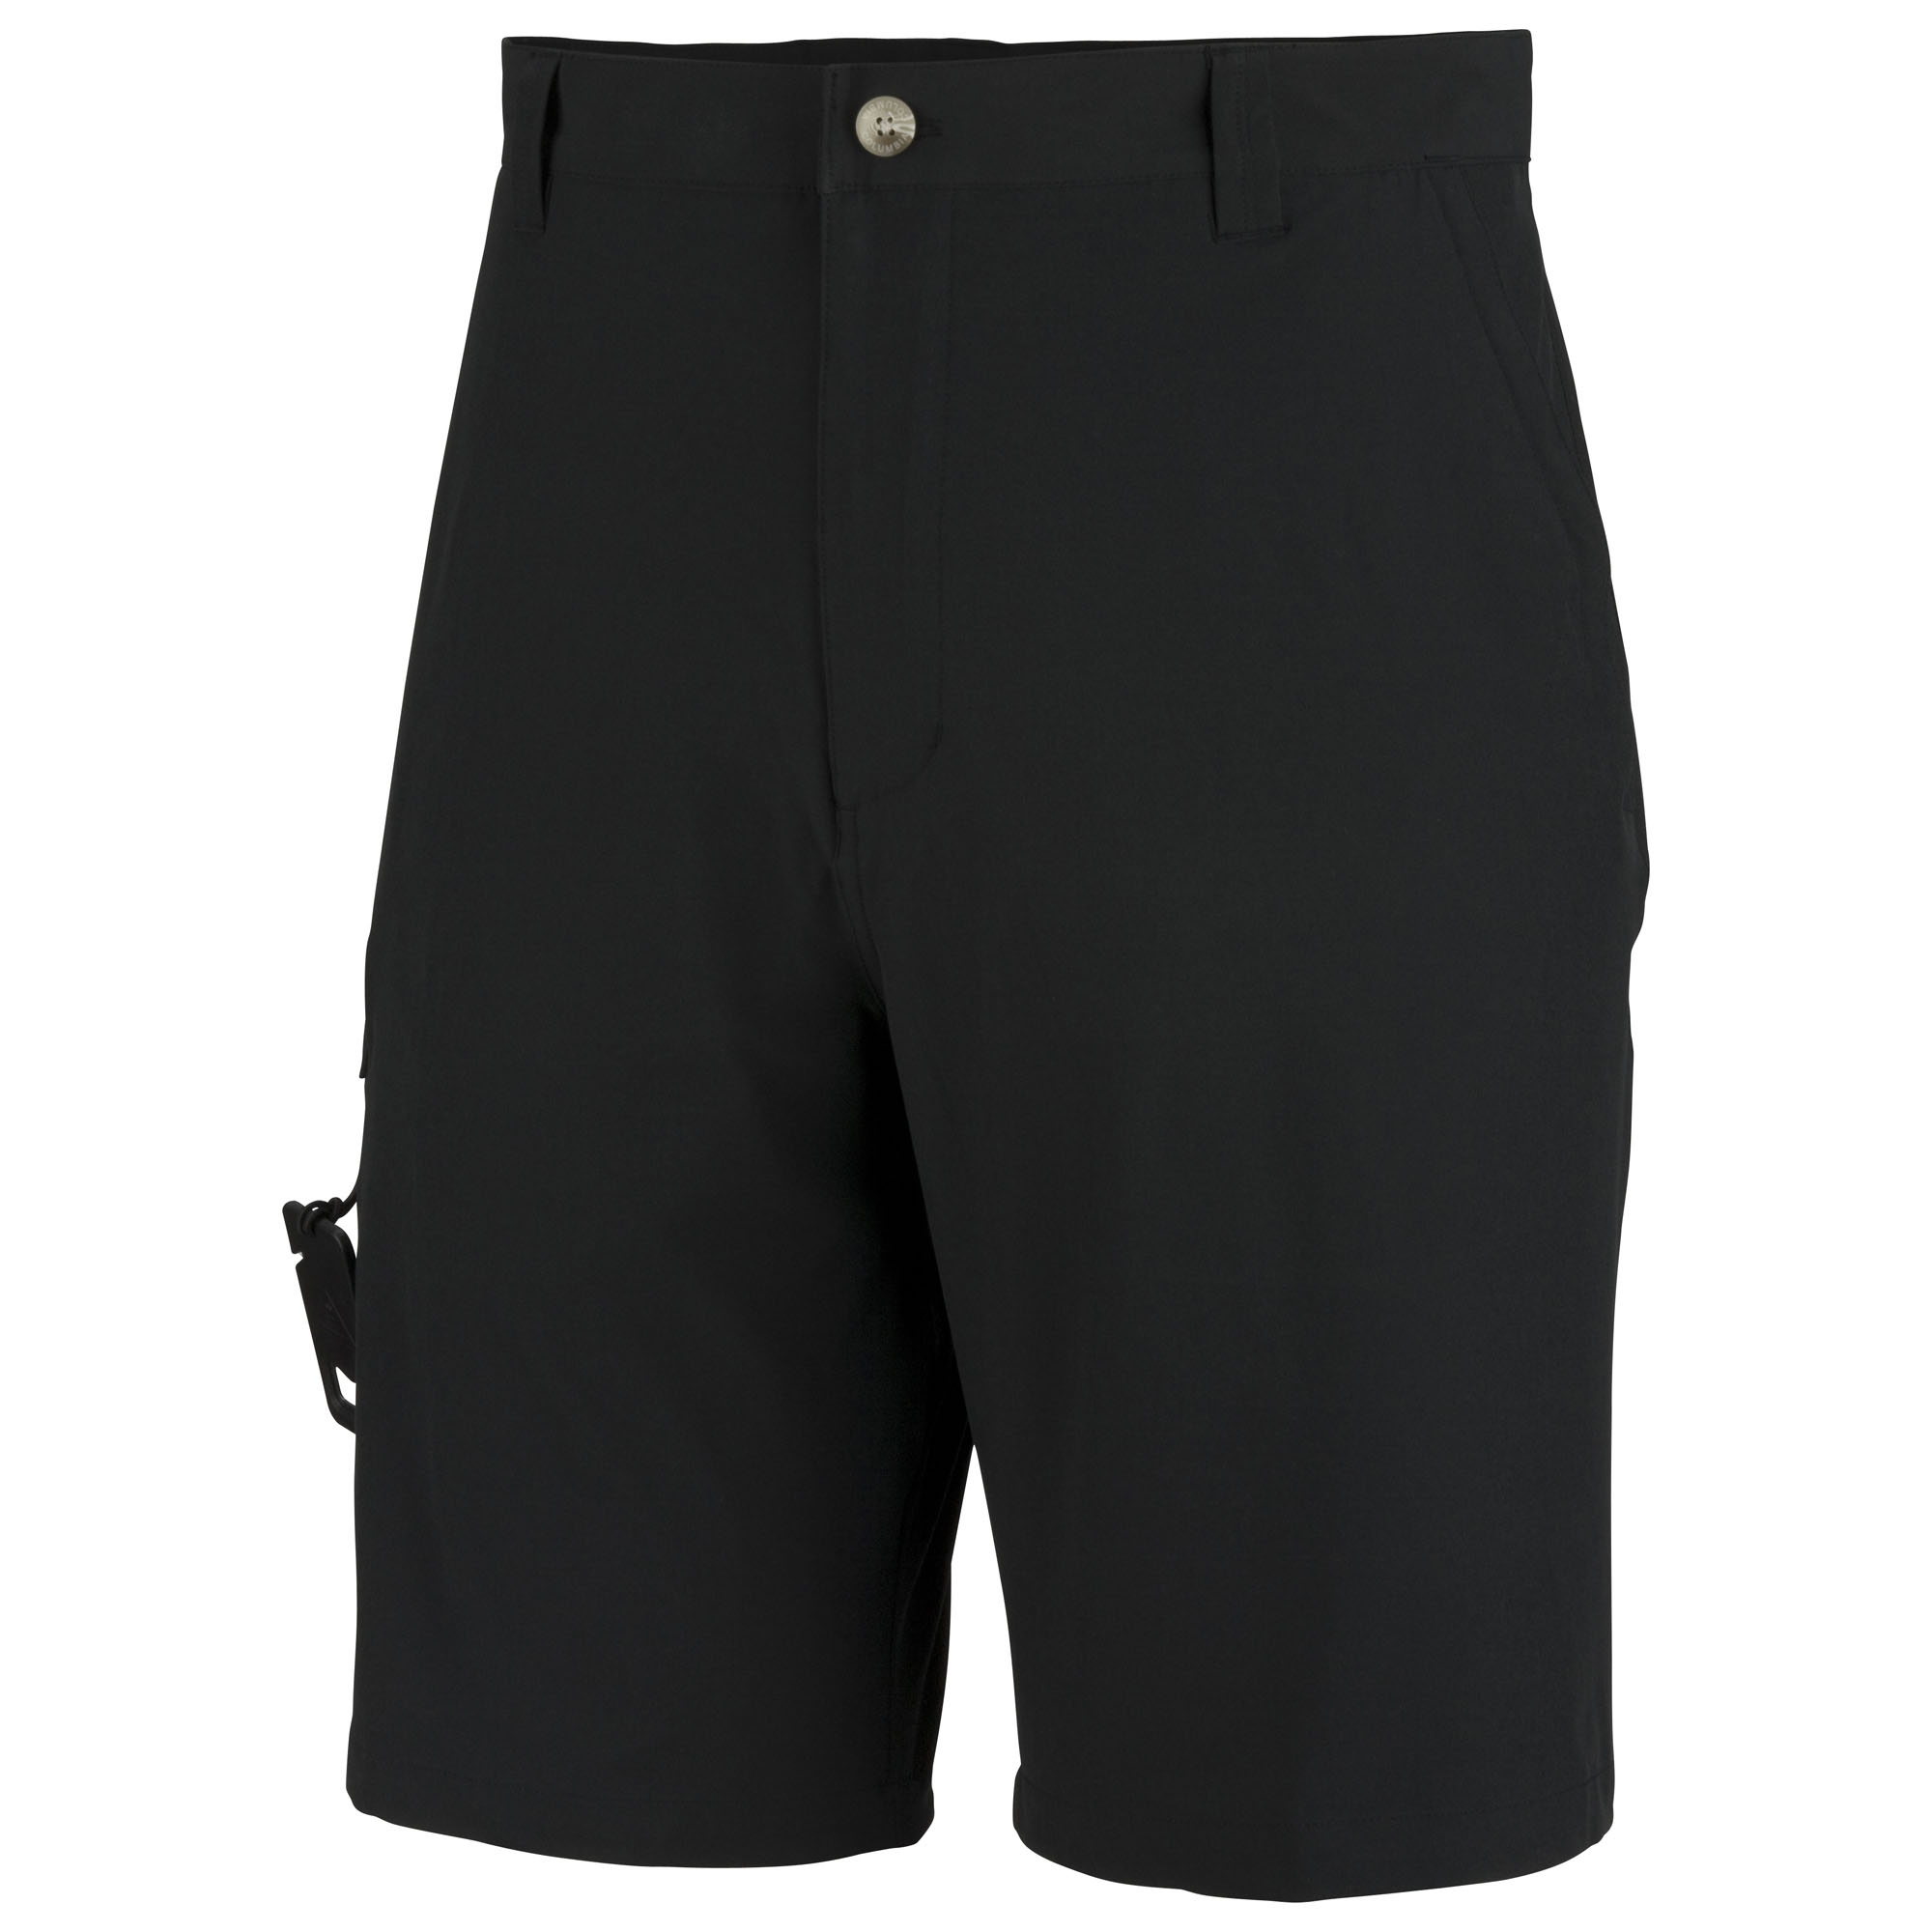 Columbia Men's Grander Marlin Offshore Short (FM4541)